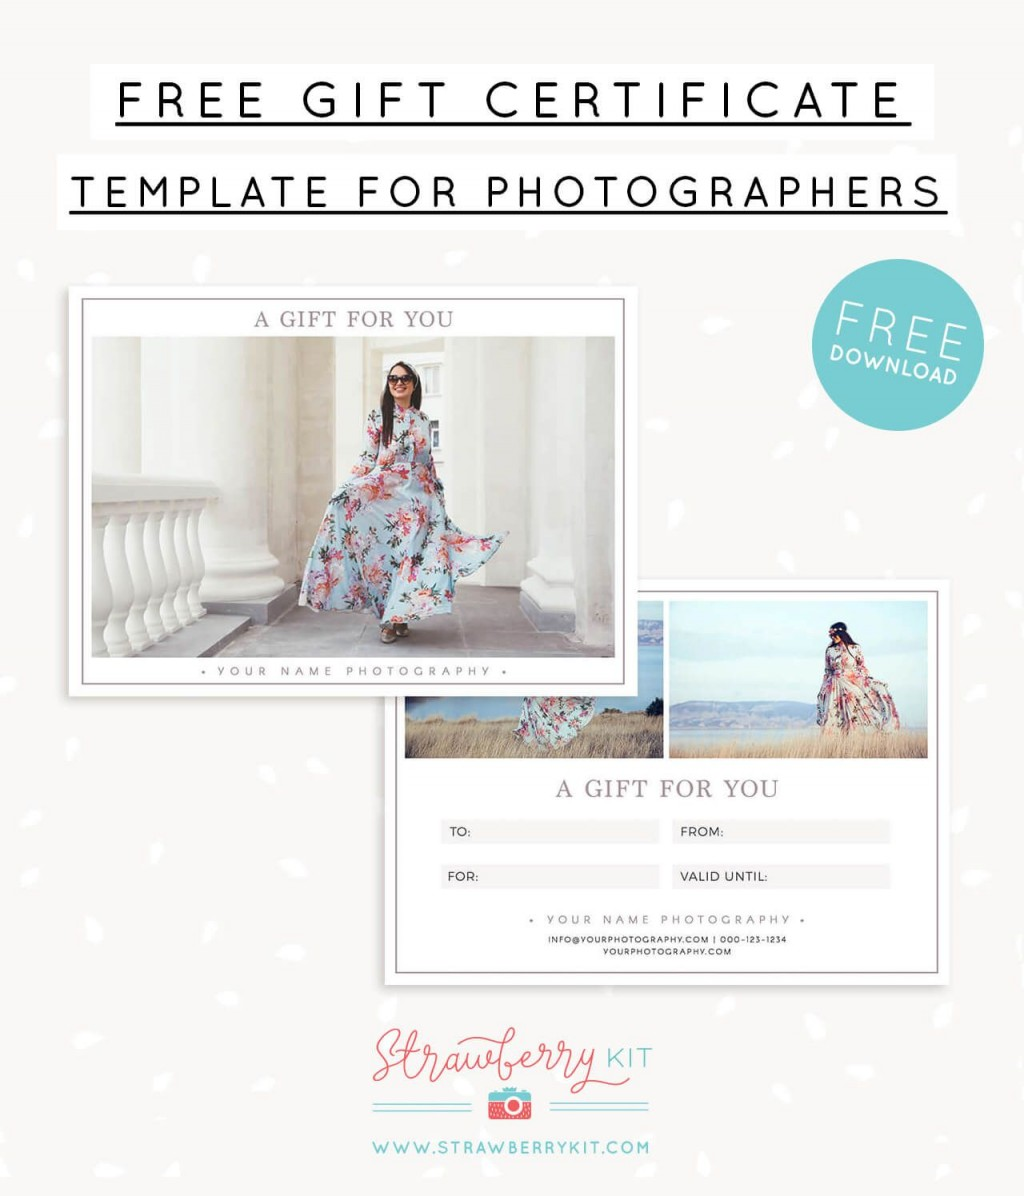 006 Breathtaking Photography Gift Certificate Template Photoshop Free Example Large